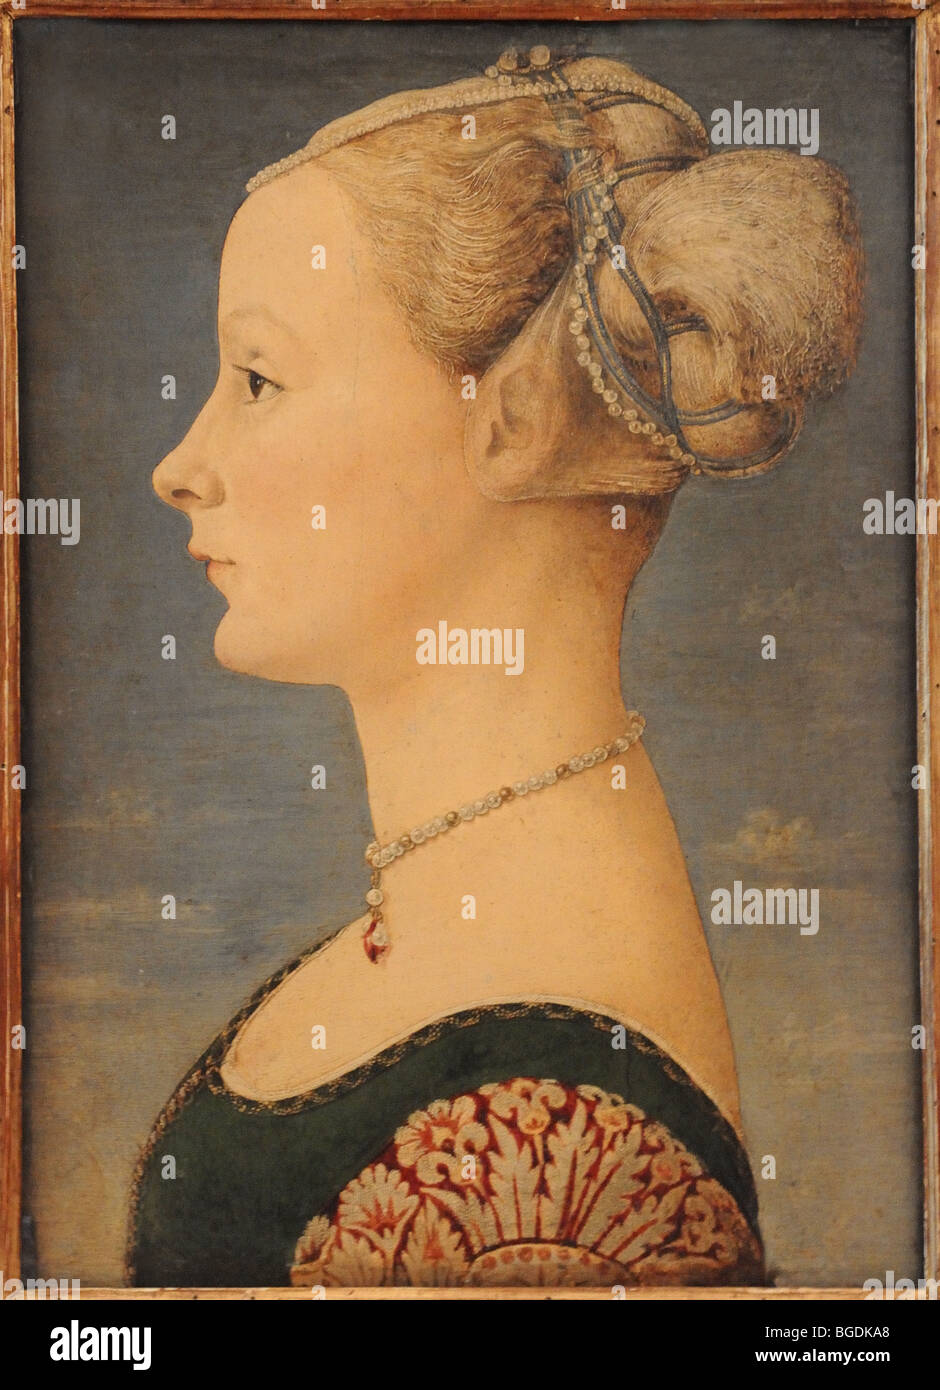 Painting by artist Piero del Pollaiuolo known as Portrait of a Lady RITTRATO DI DAMA in Museo Poldi Pezzoli Milan - Stock Image